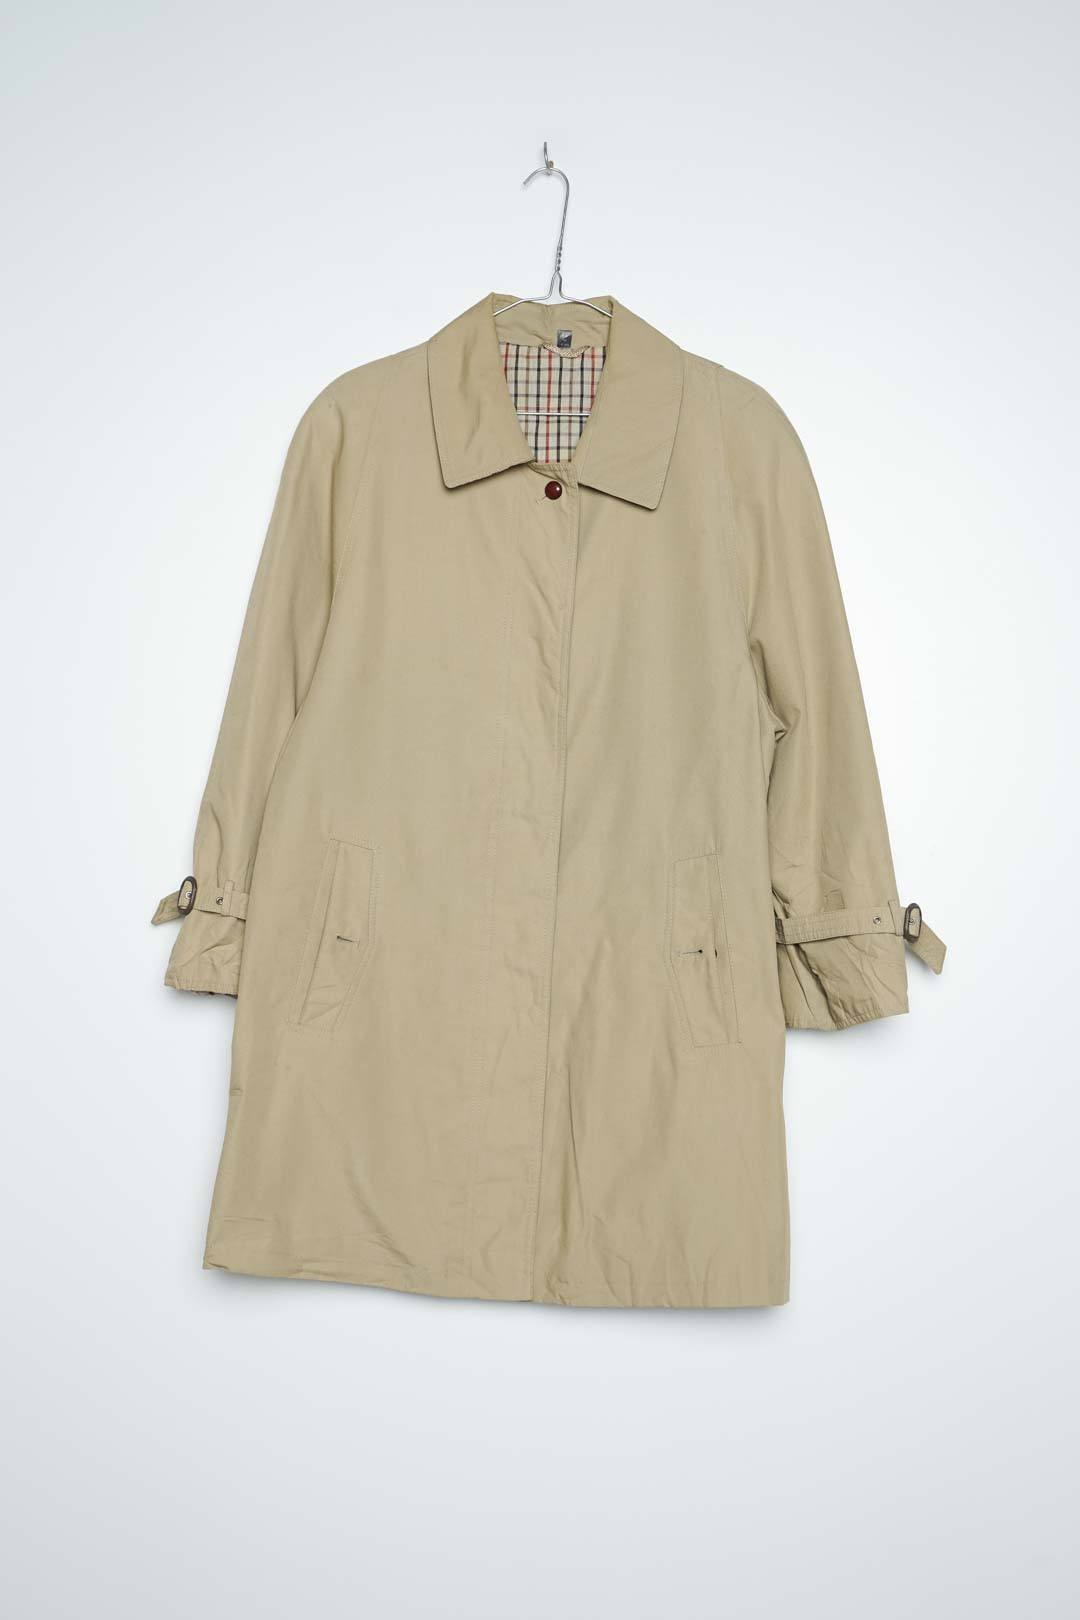 Beige Threnchcoat Pocket Button Broken S - VinoKilo.com